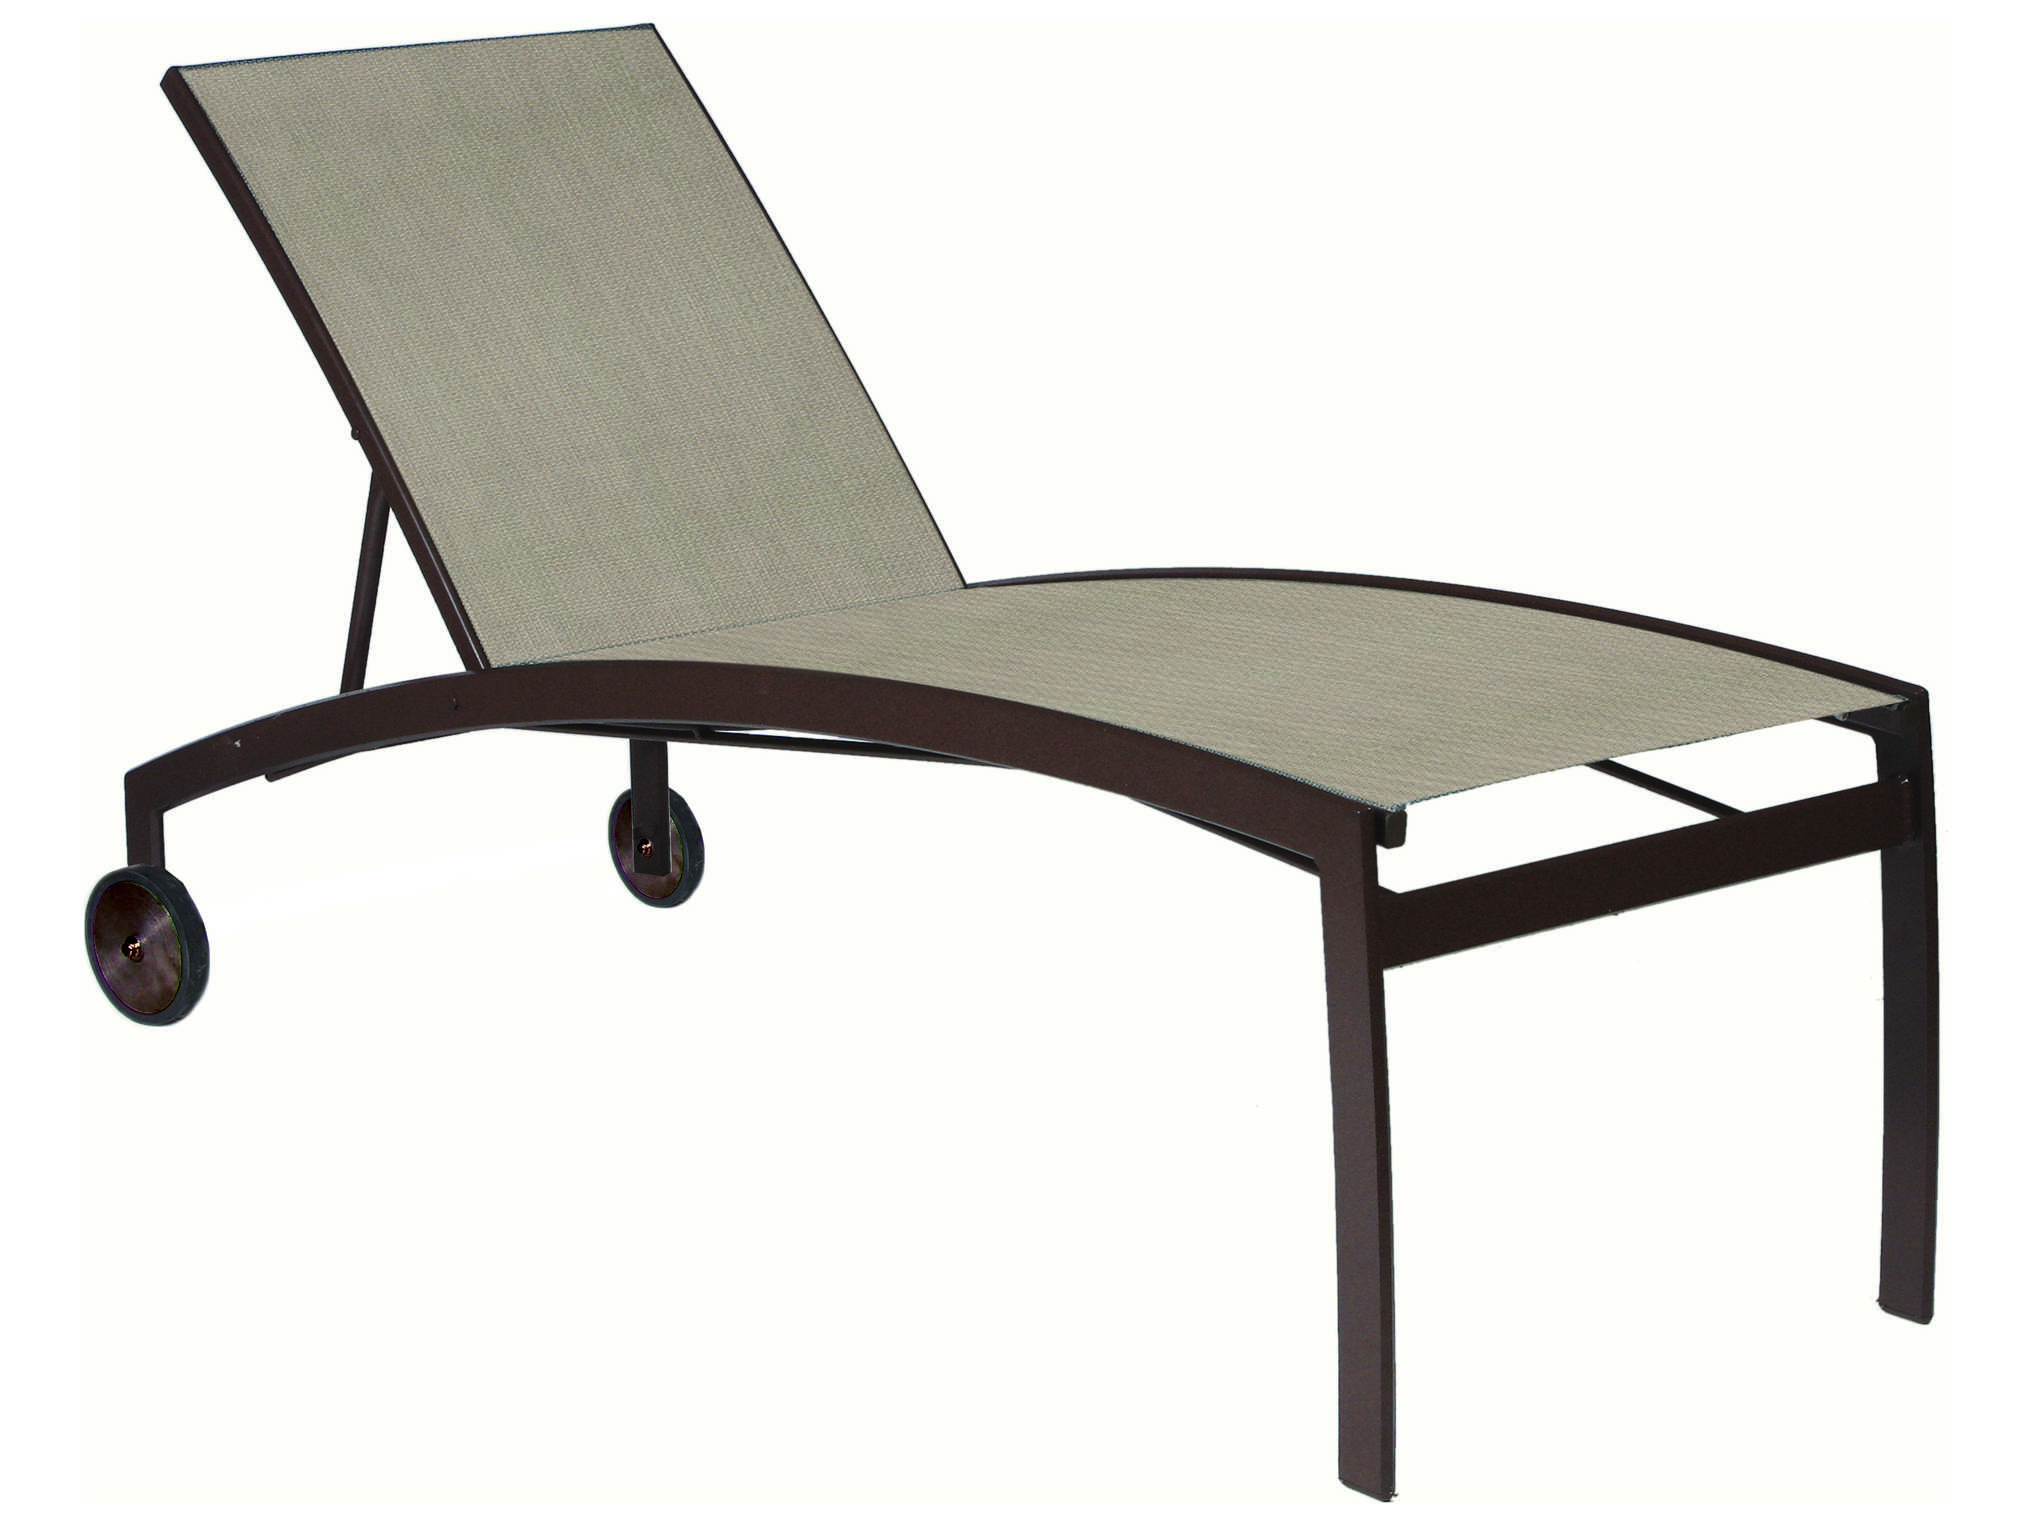 Suncoast vision sling cast aluminum chaise lounge with for Chaise lounge aluminum